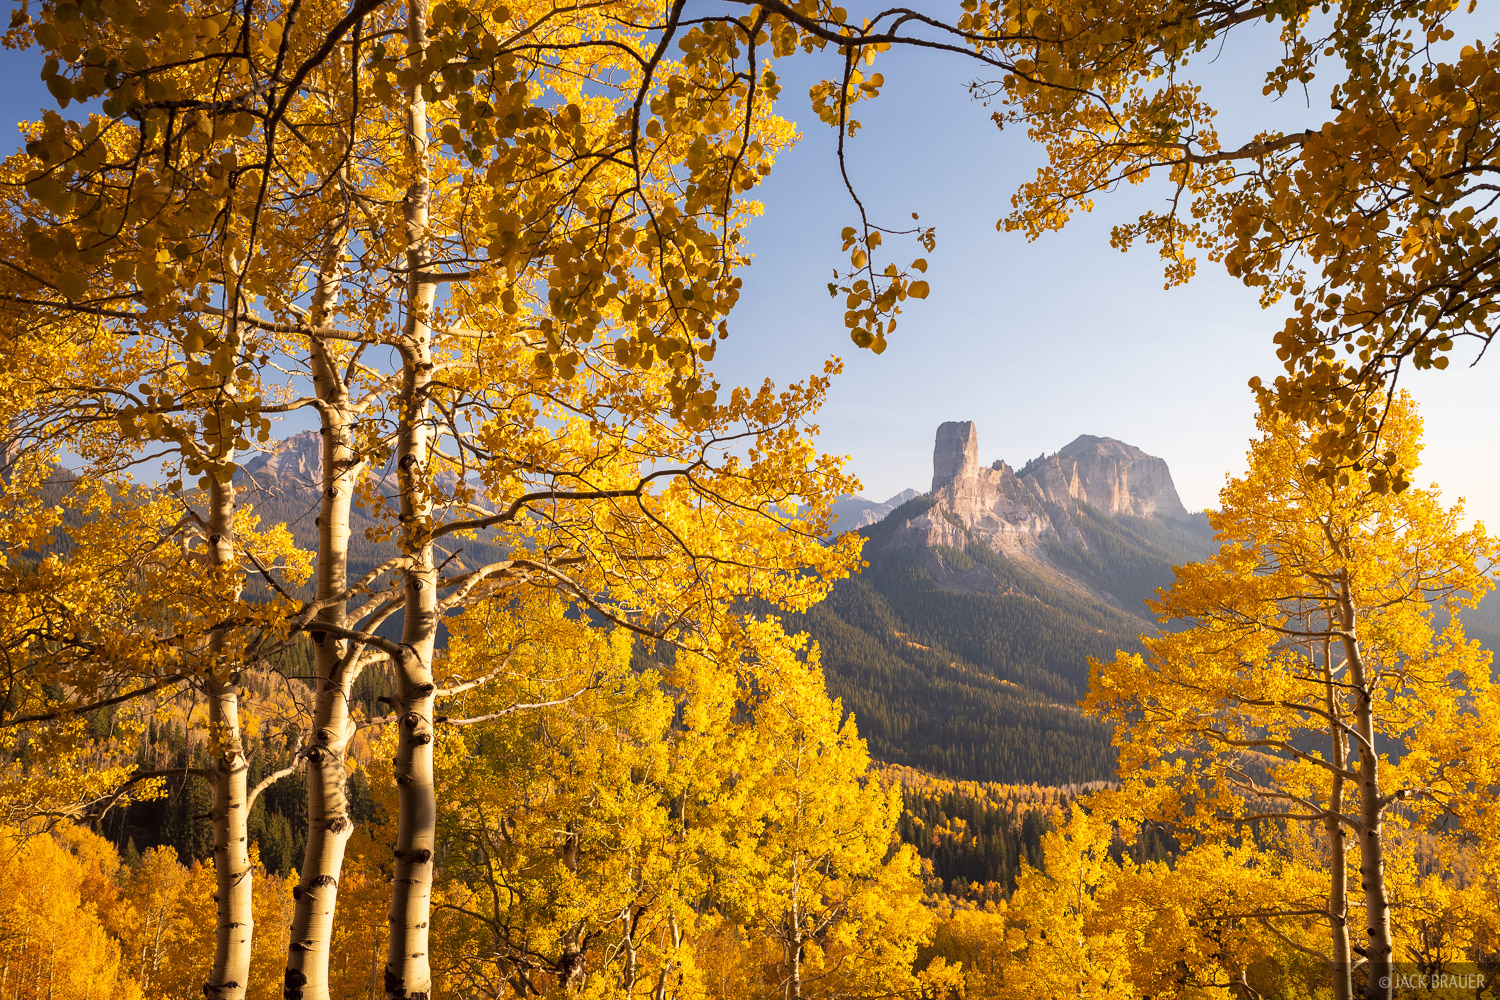 A view of Chimney Rock and Courthouse Mountain through a grove of aspens.